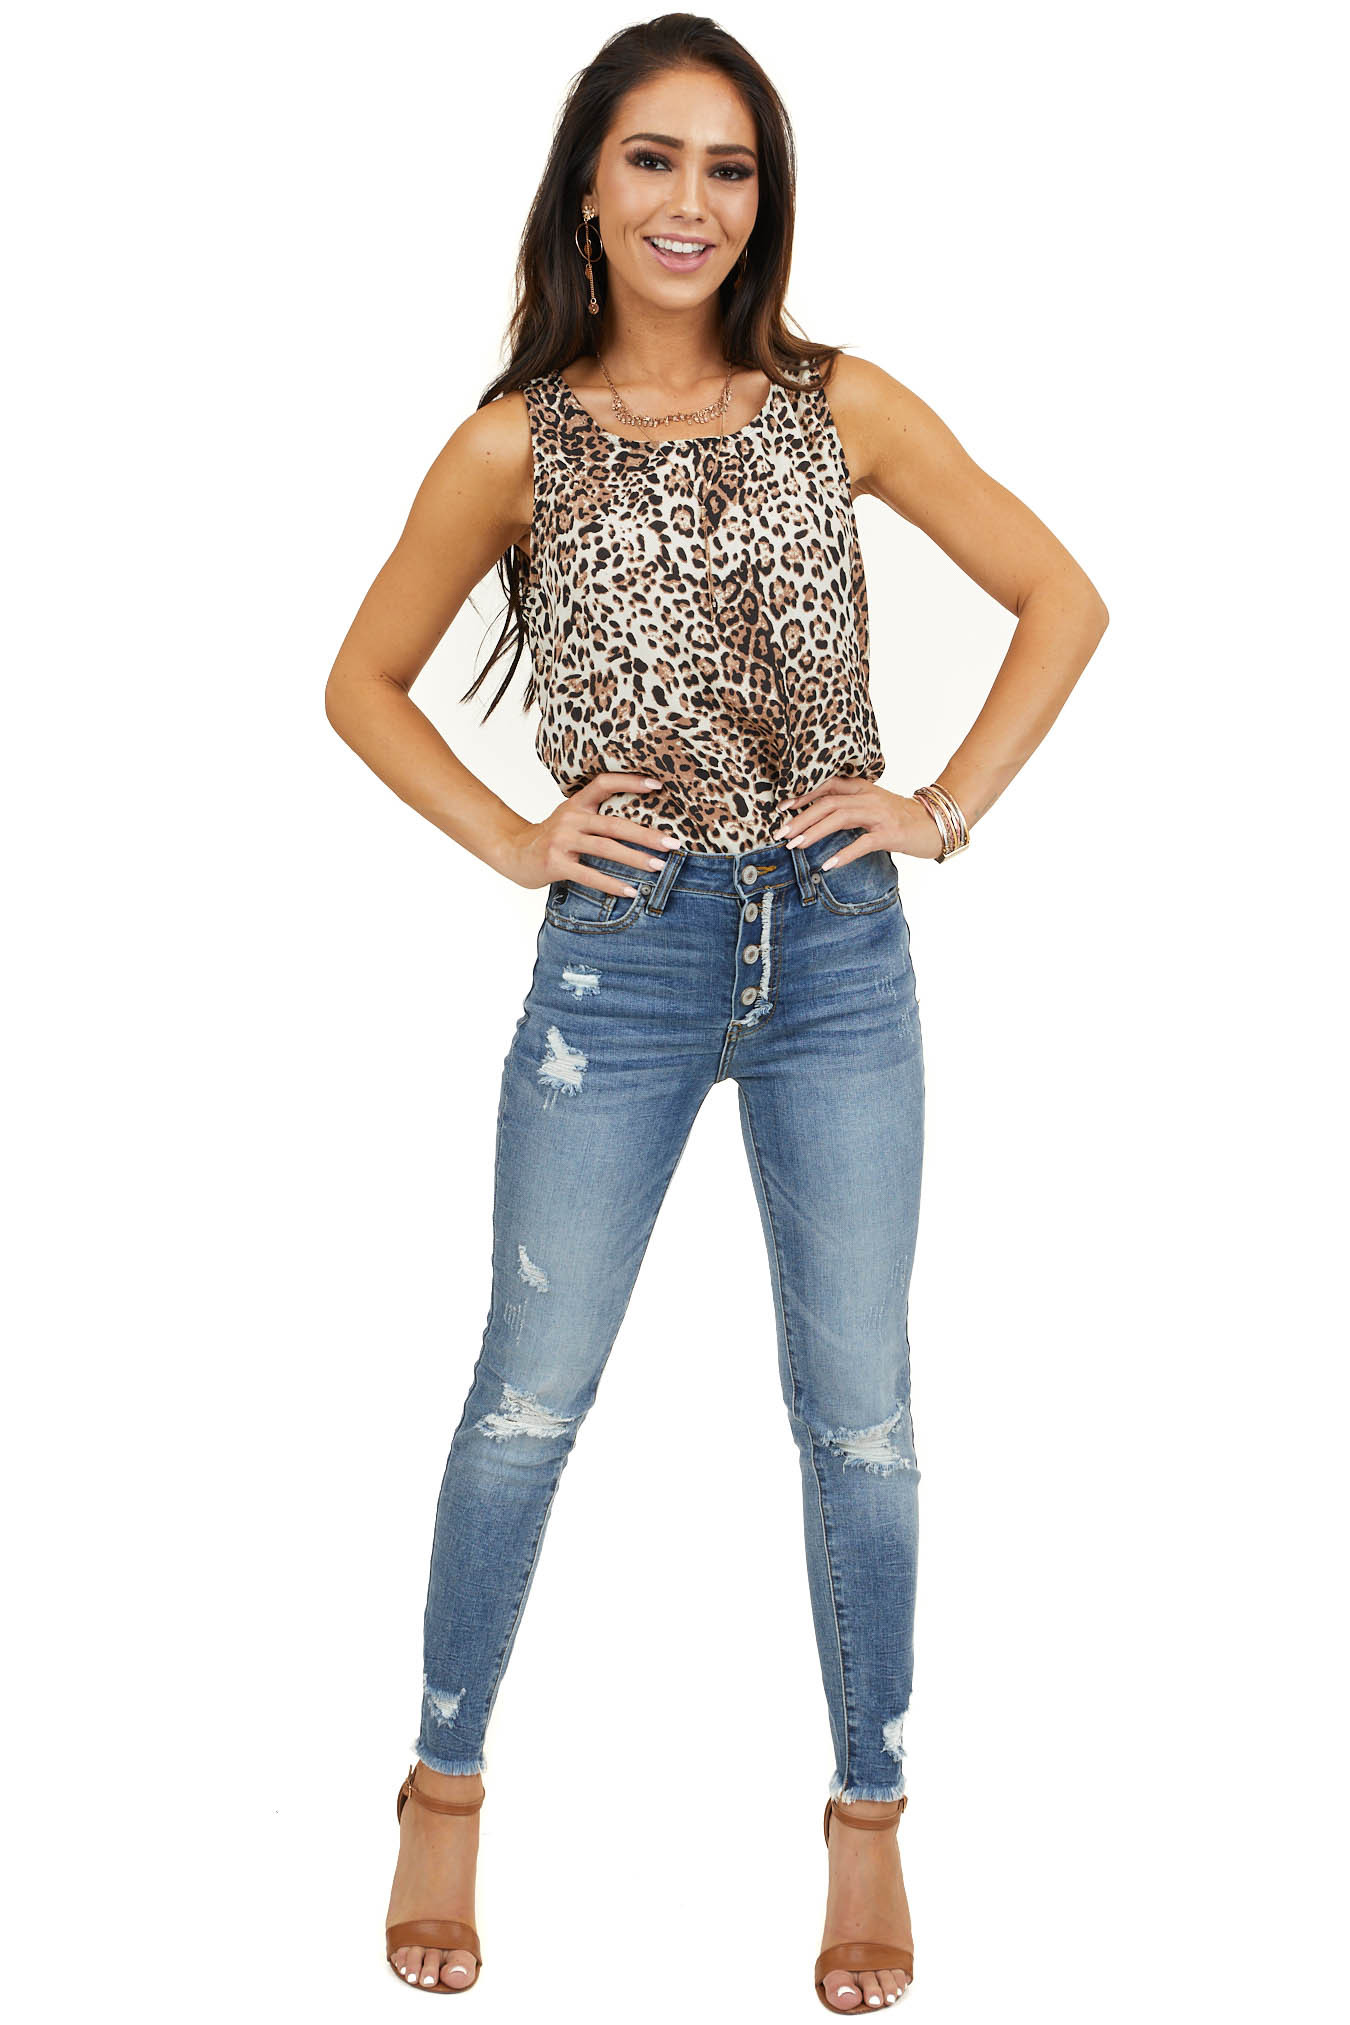 Cream and Mocha Leopard Print Tank Top with Rounded Neckline